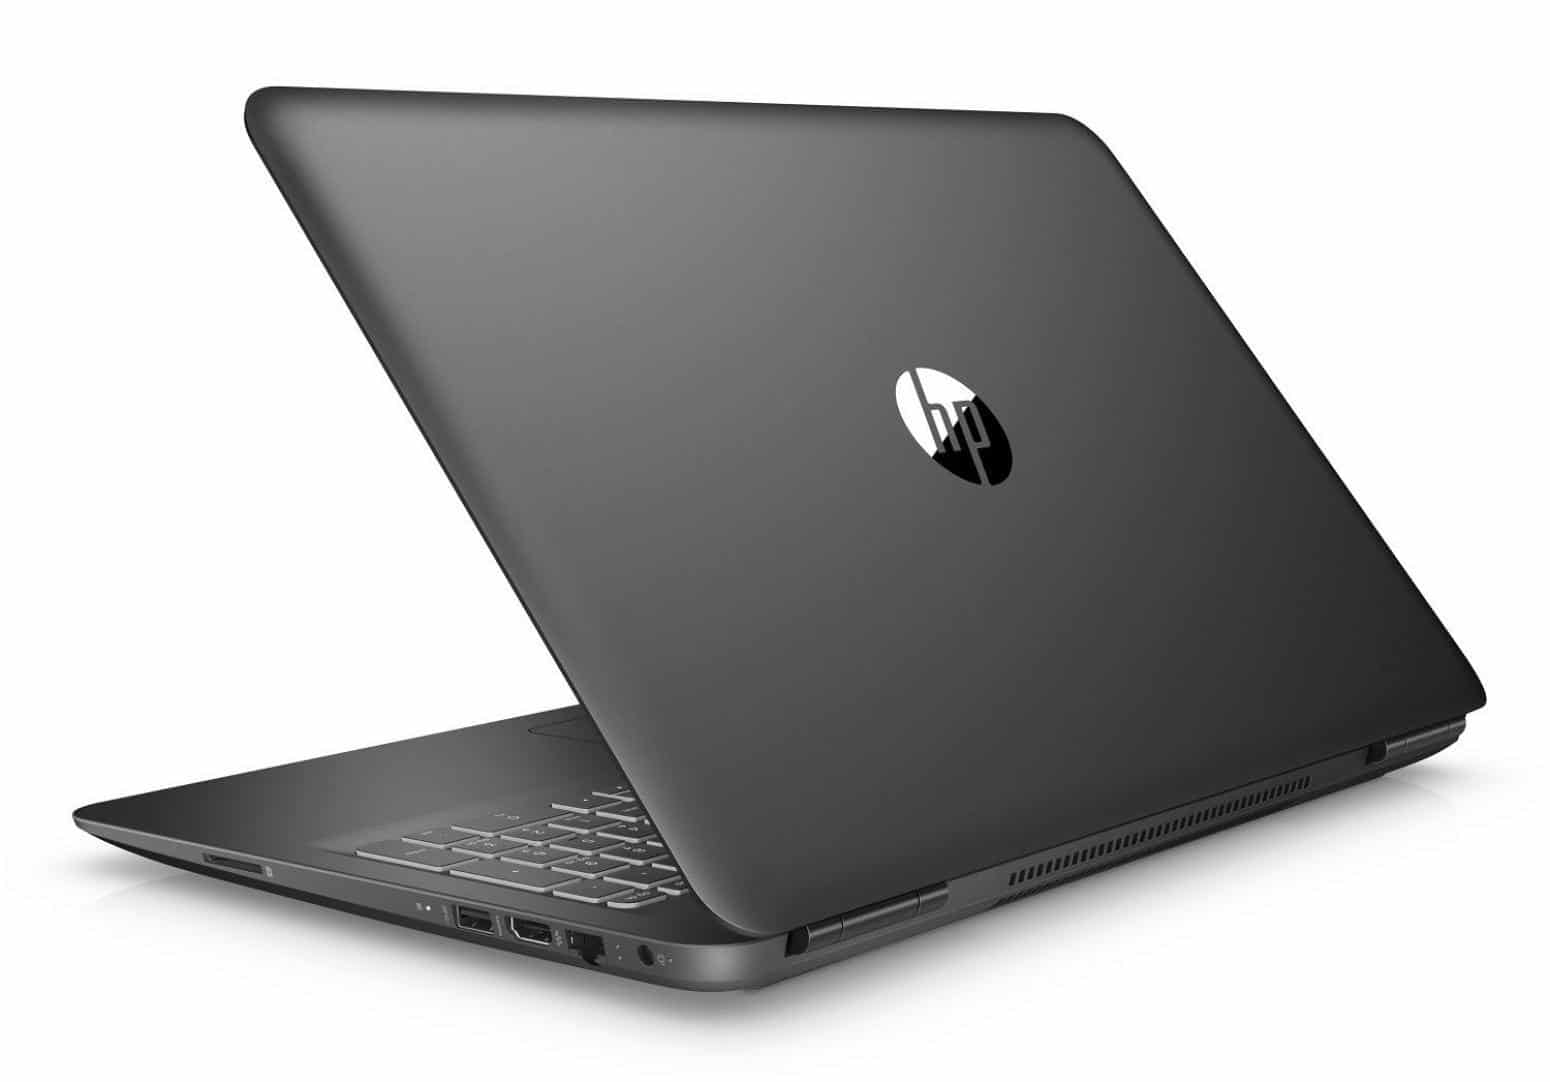 HP Pavilion 15-bc307nf, PC 15 pouces Full i5 Kaby GTX 950M 6 Go (609€)